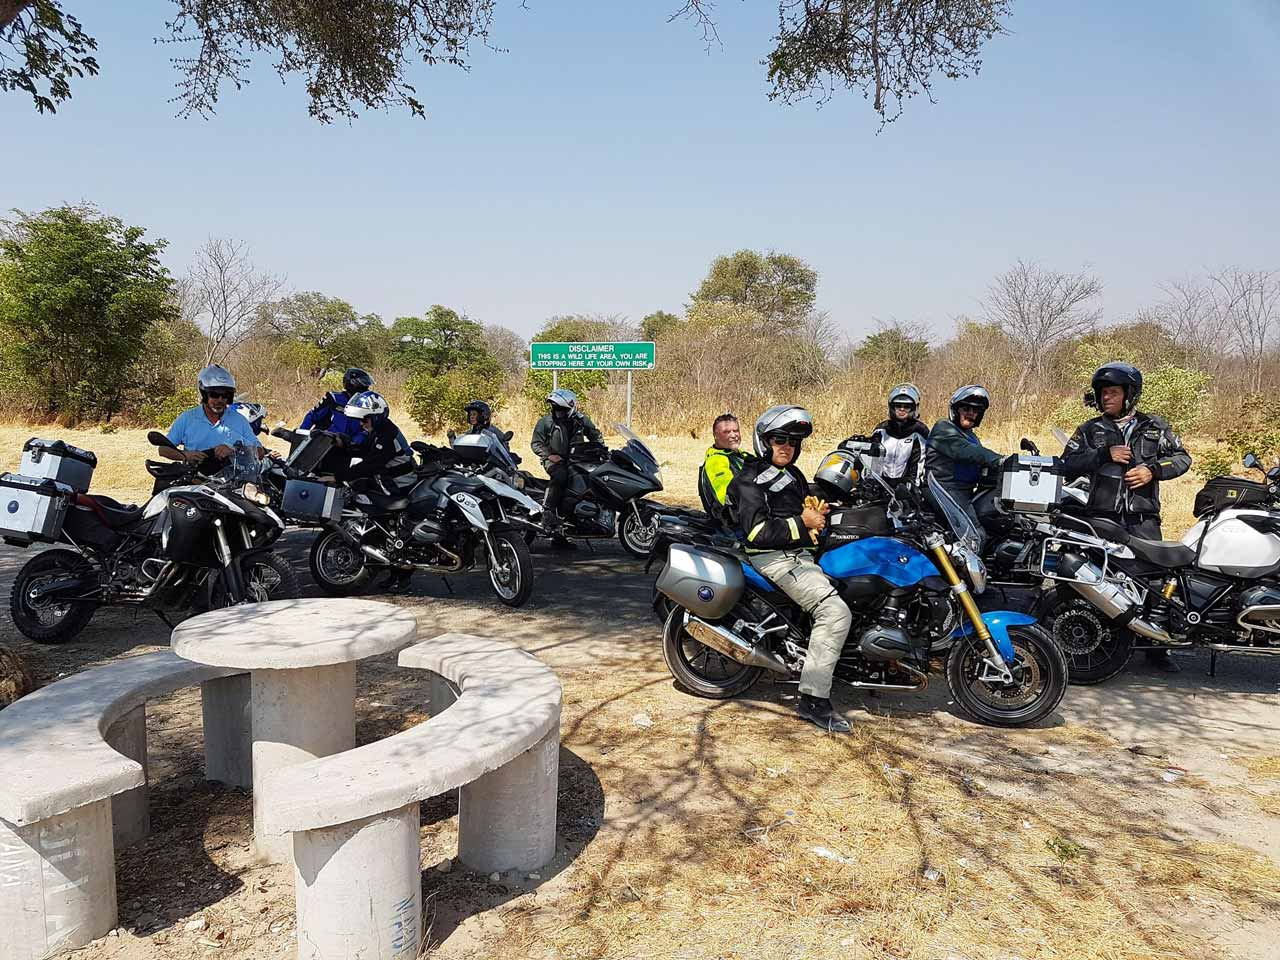 Day 6 - Call of the Wild Motorcycle Tour